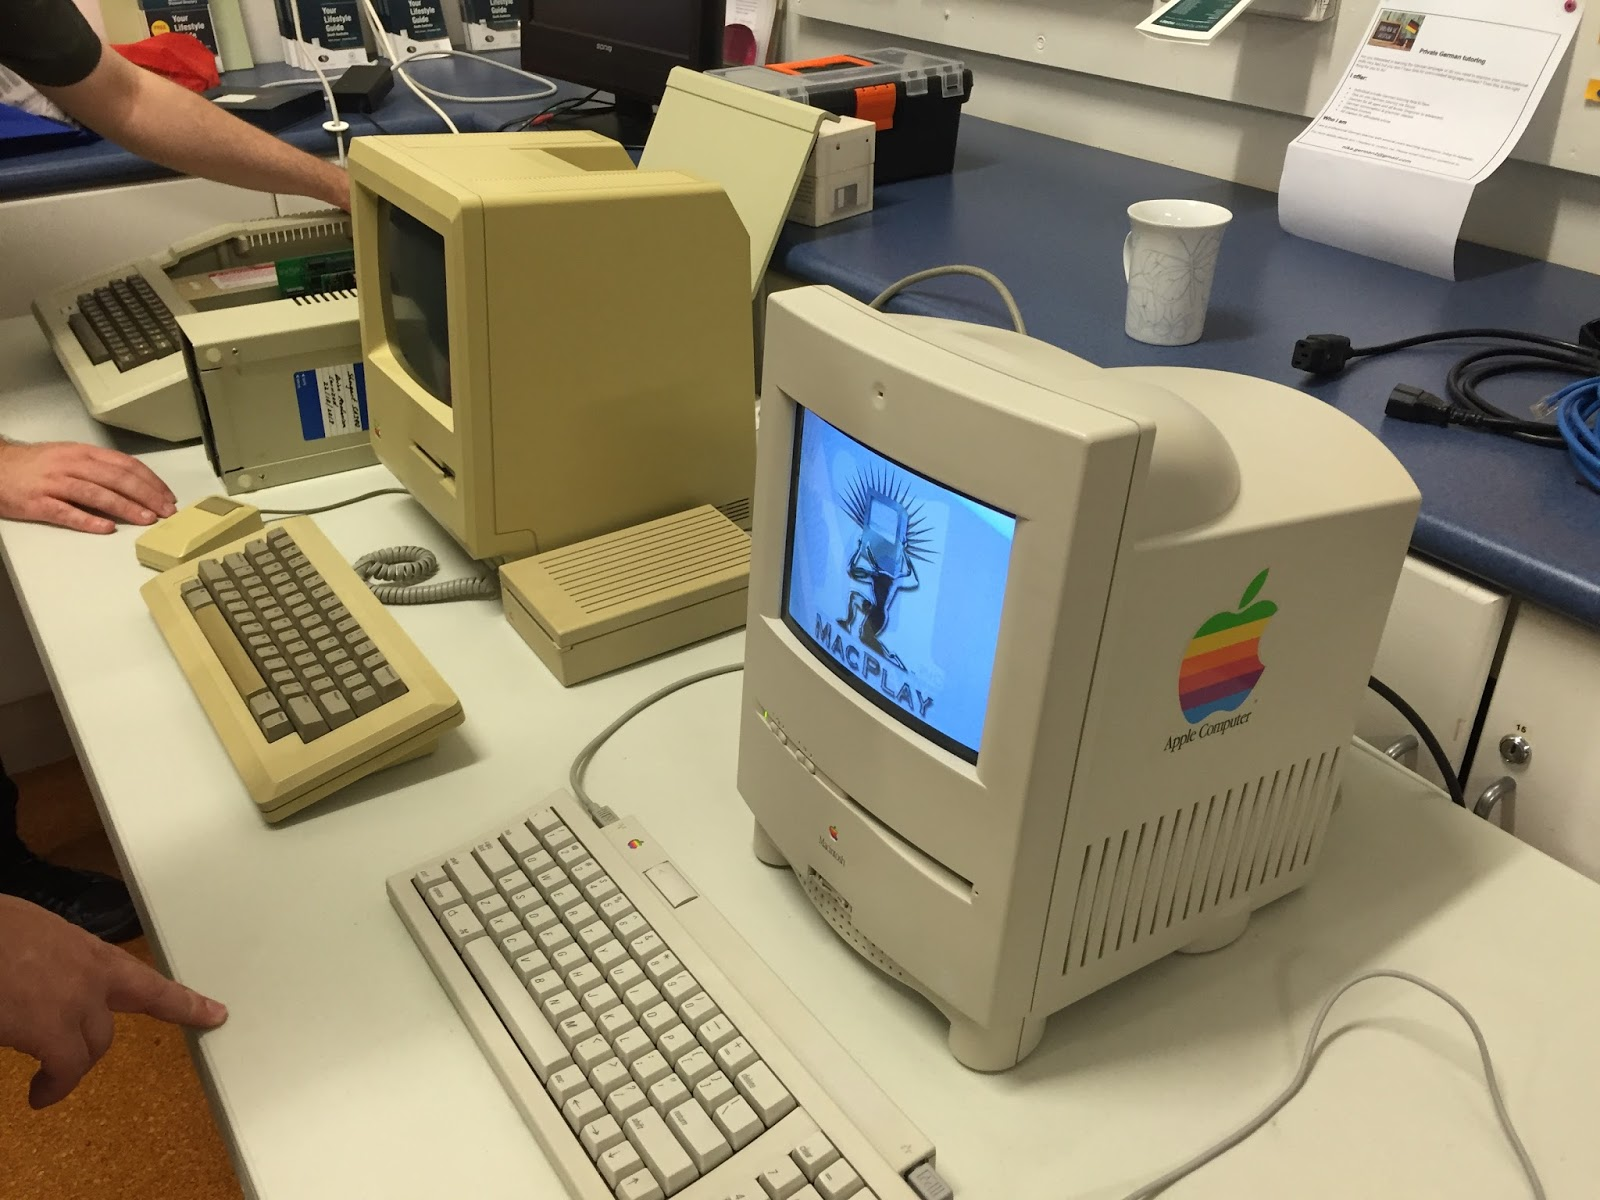 Epsilon's Amiga Blog: Adelaide Retro Computing Meeting - March 2016